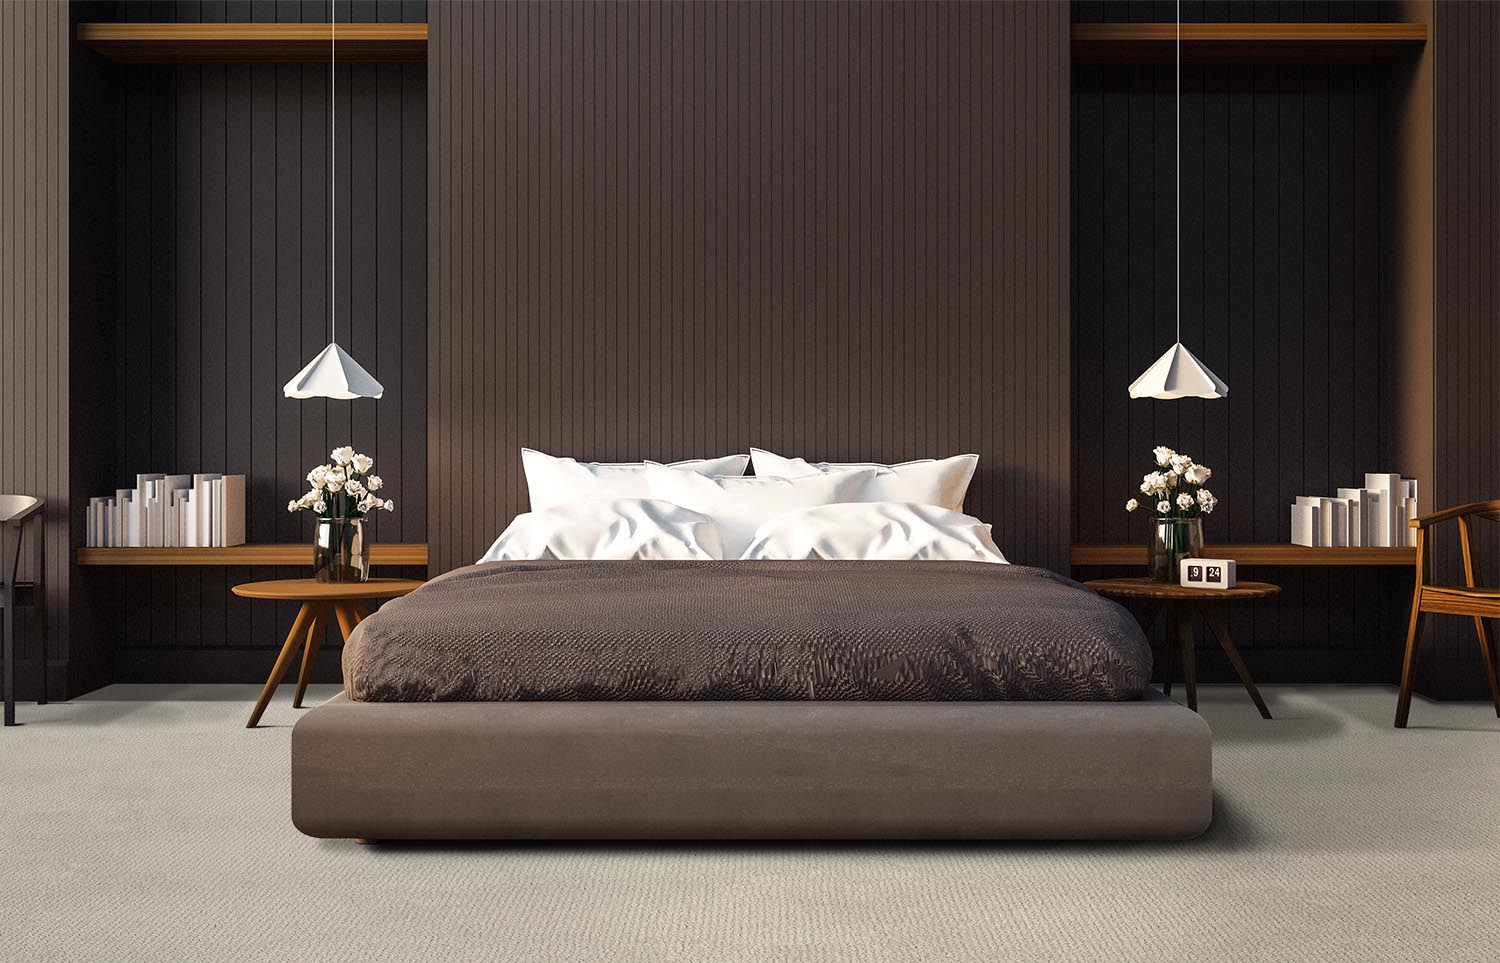 Immerse - Sink In contemporary bedroom